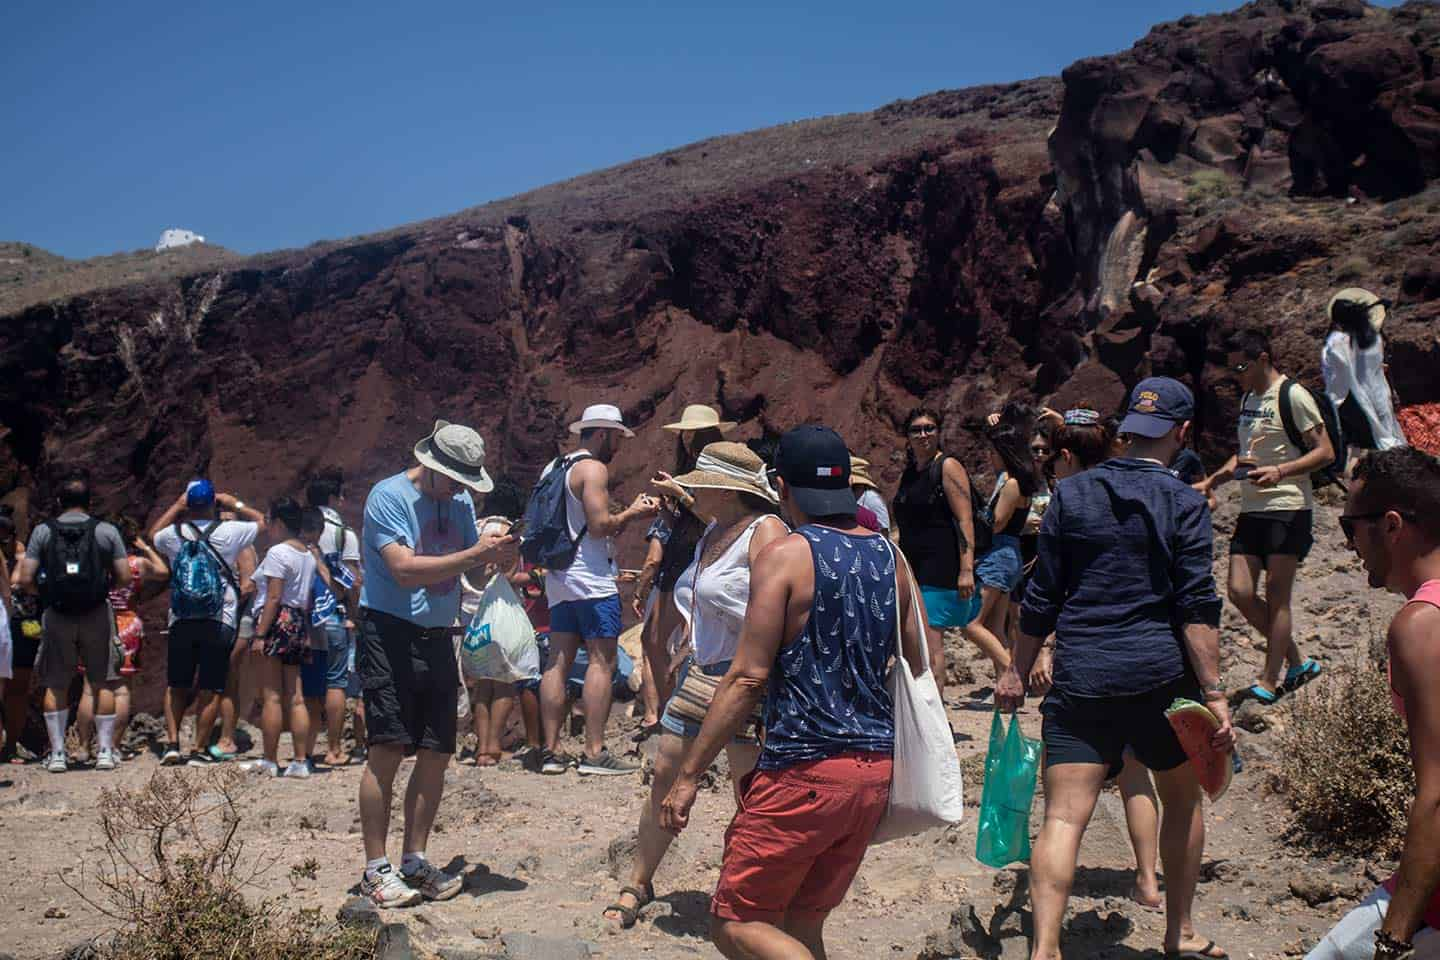 Image of crowds of people at the Red Beach viewpoint in Santorini